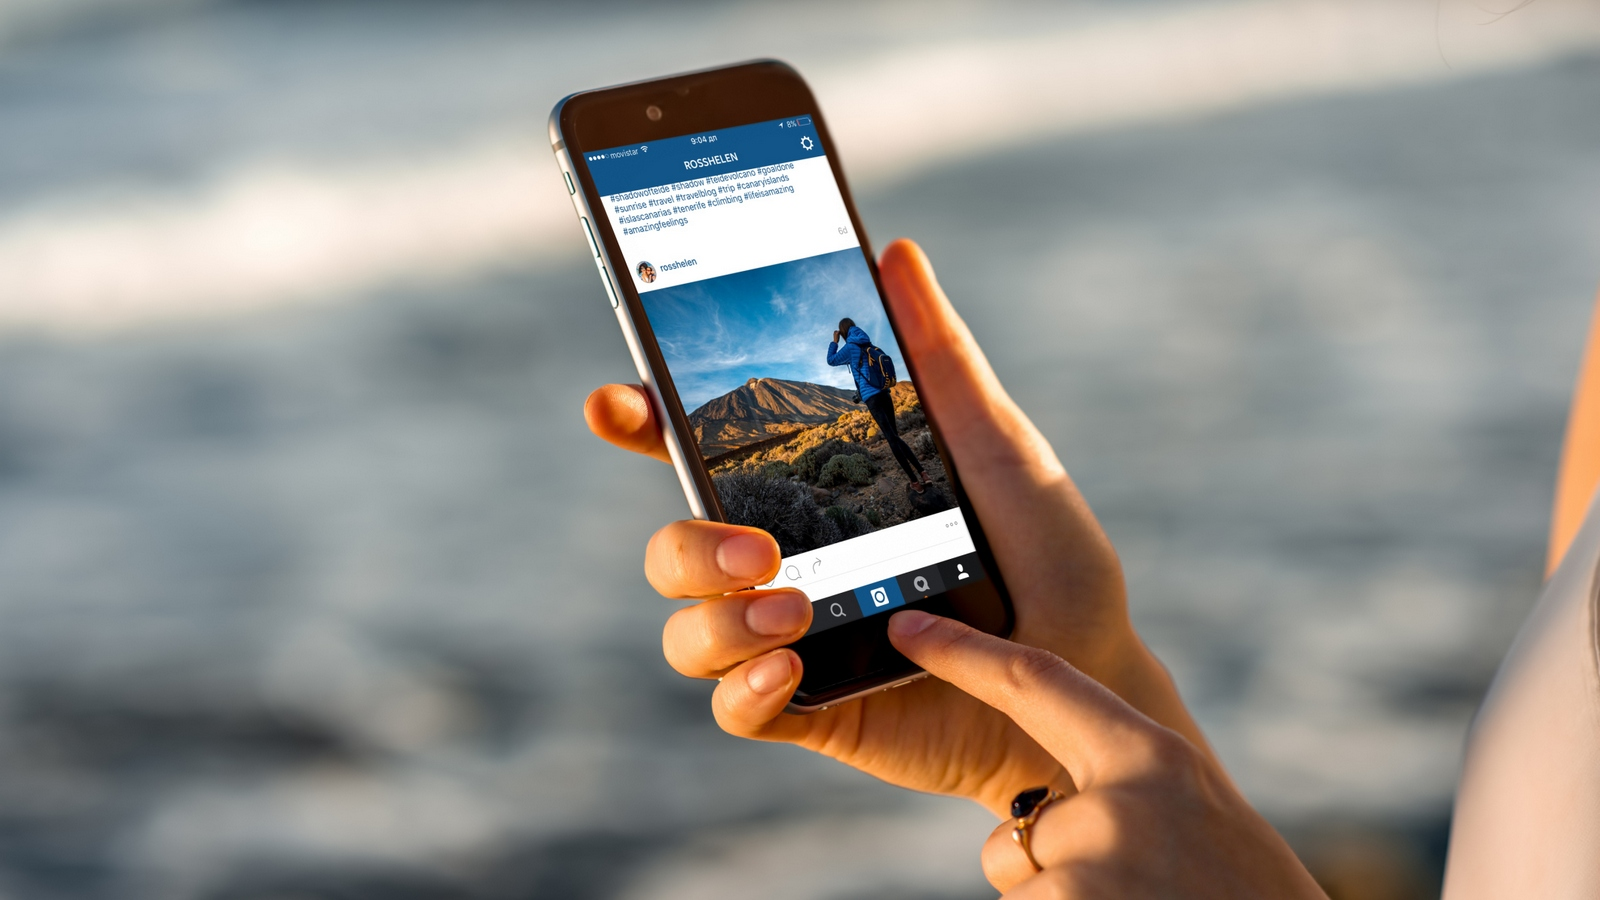 Updated Instagram: live broadcast and disappearing messages